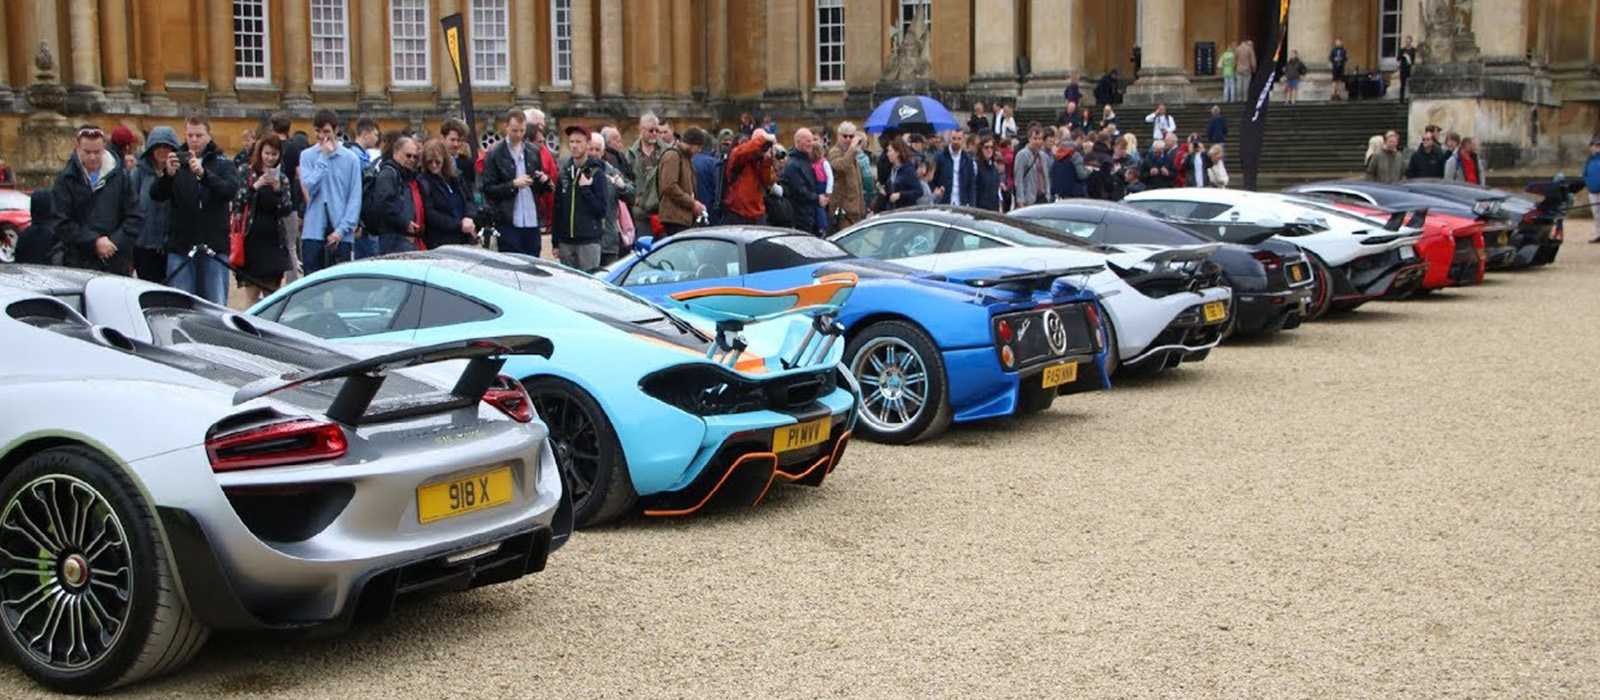 Blenheim-Palace-Supercar-Show-Saxon-Insurance-Brokers.jpg